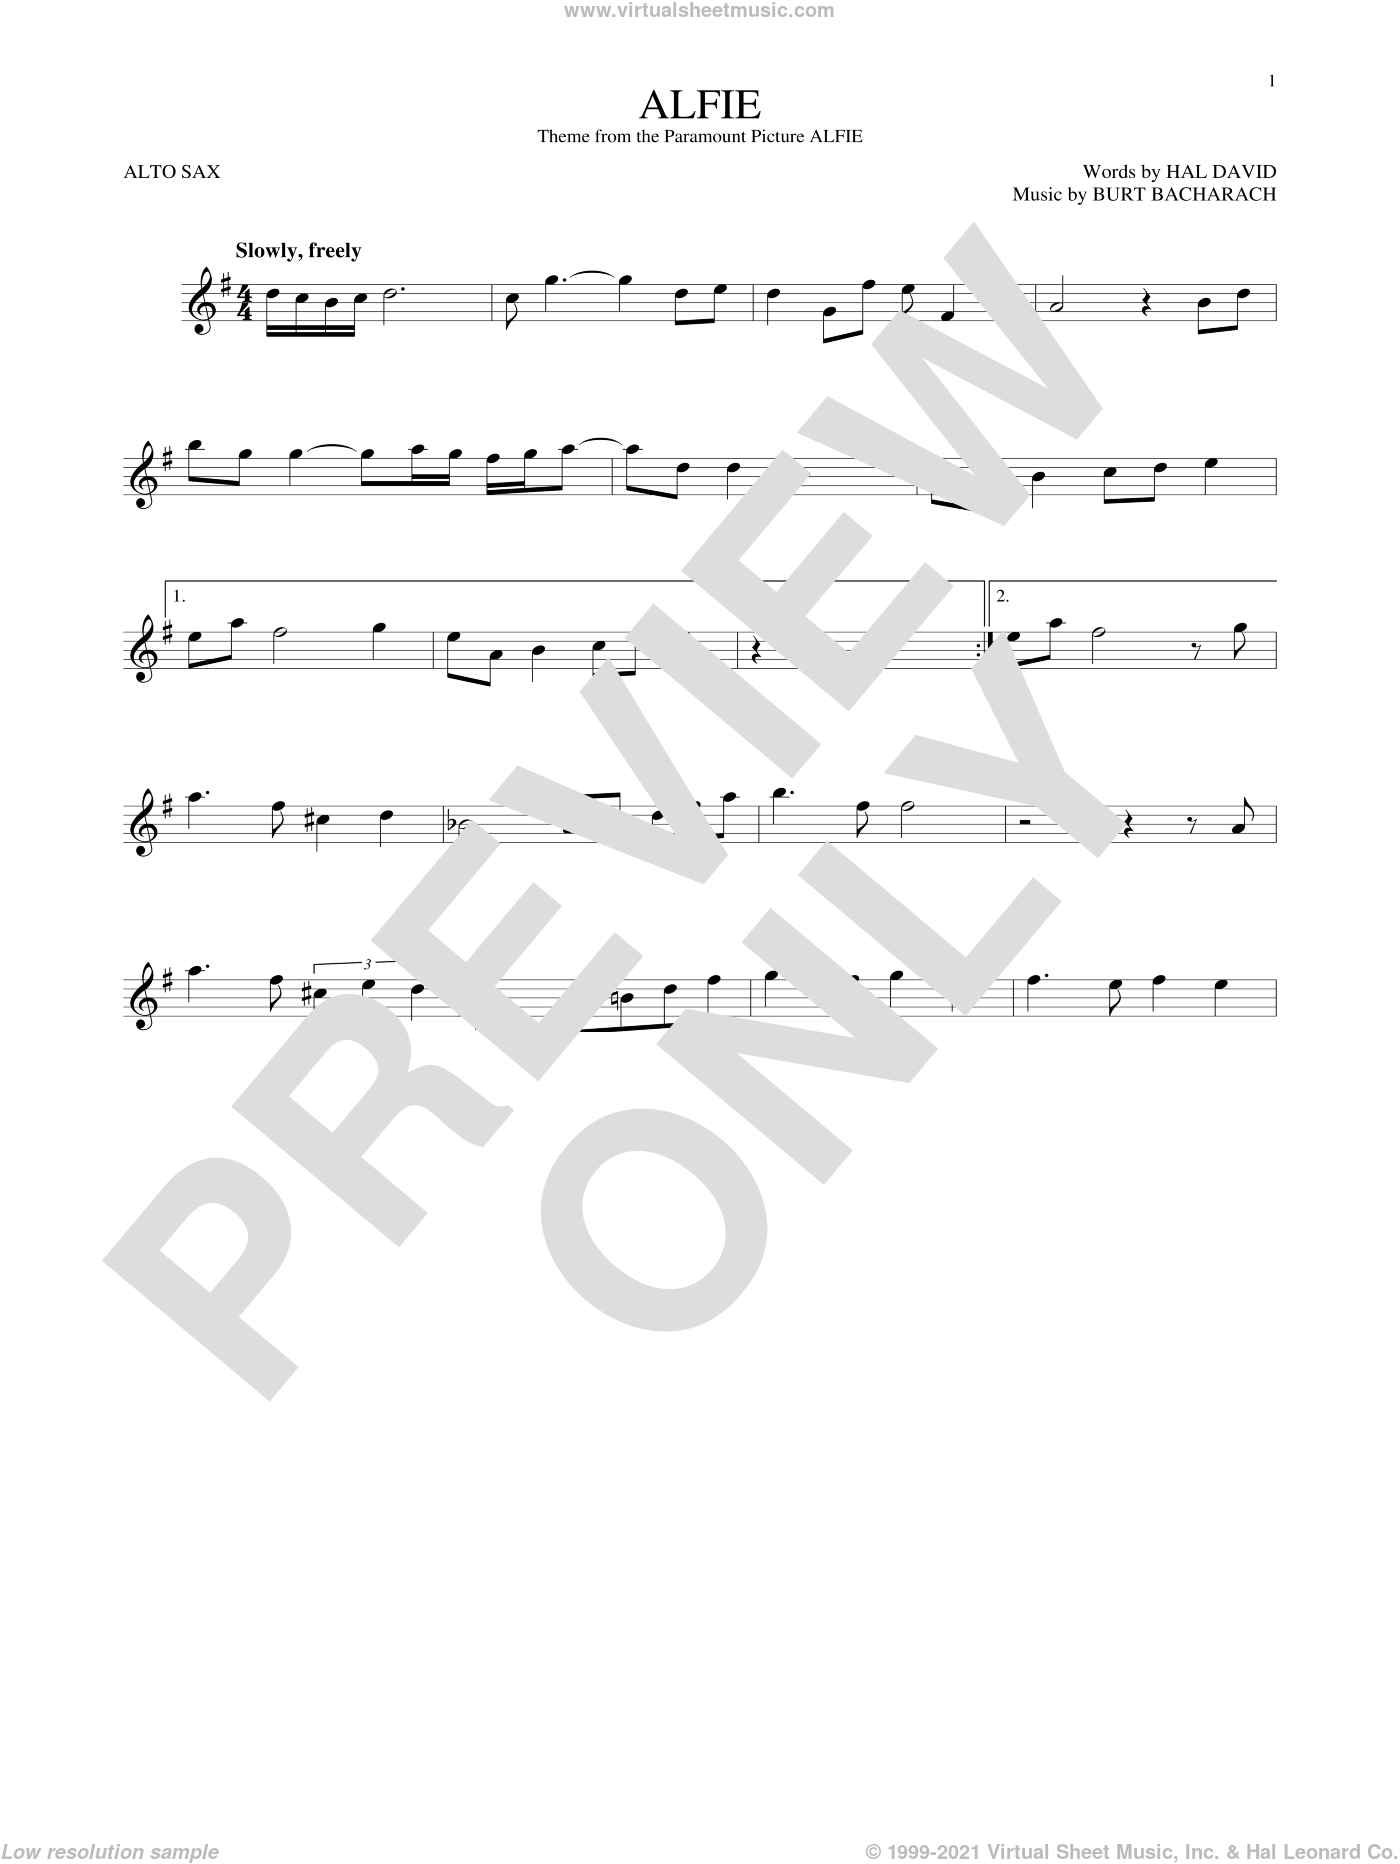 Alfie sheet music for alto saxophone solo by Dionne Warwick, Cher, Miscellaneous, Sonny Rollins, Stevie Wonder, Burt Bacharach and Hal David, intermediate skill level